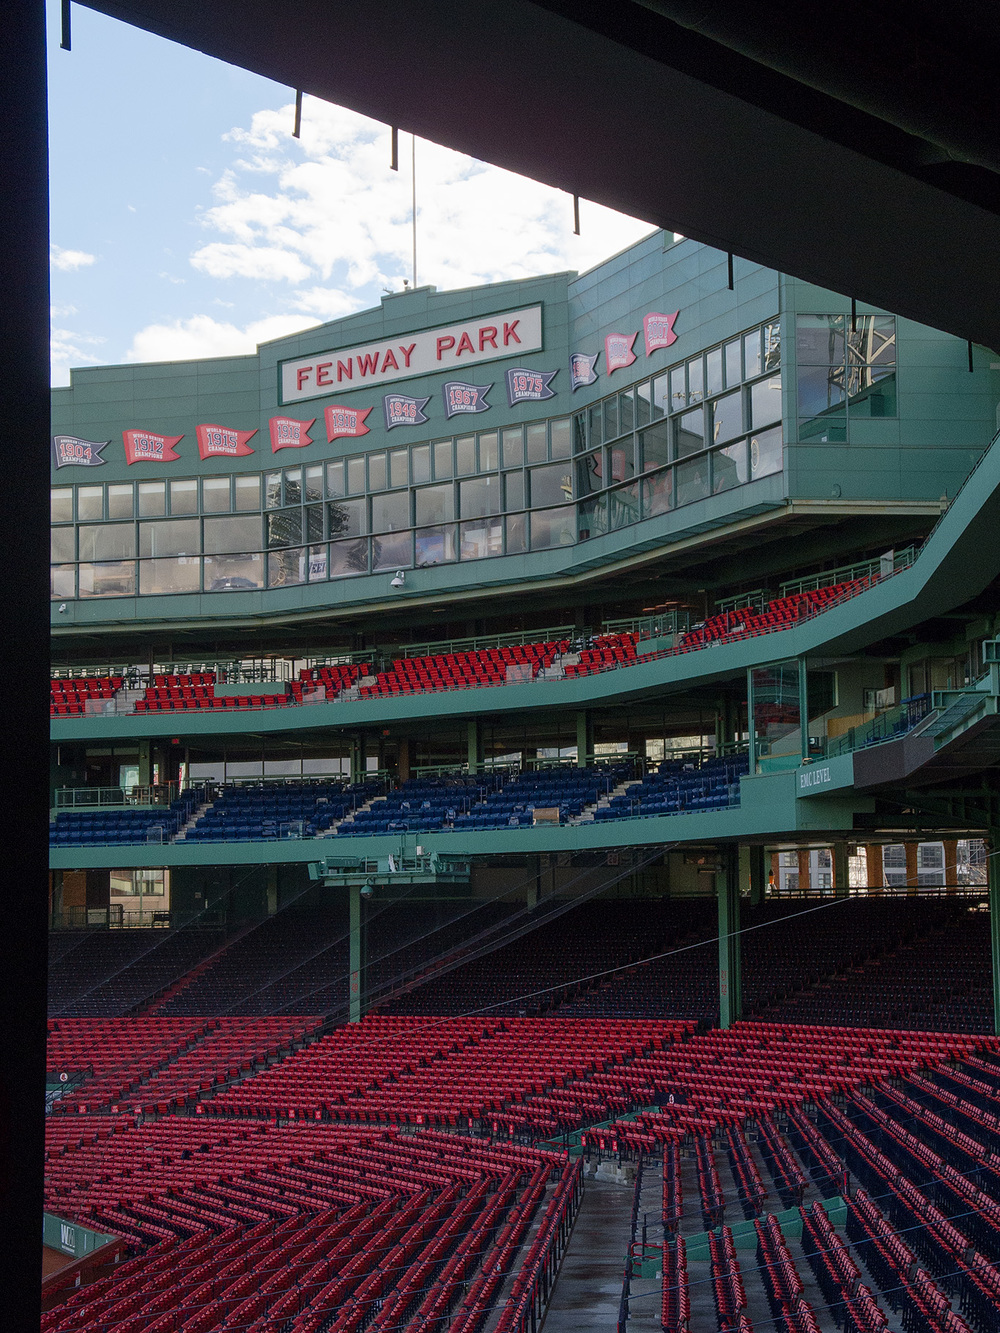 Fenway Park can be a challenging place to see a game with the highest ticket prices in the nation, and tiny seats facing every which way, but a tour takes you behind the scenes!